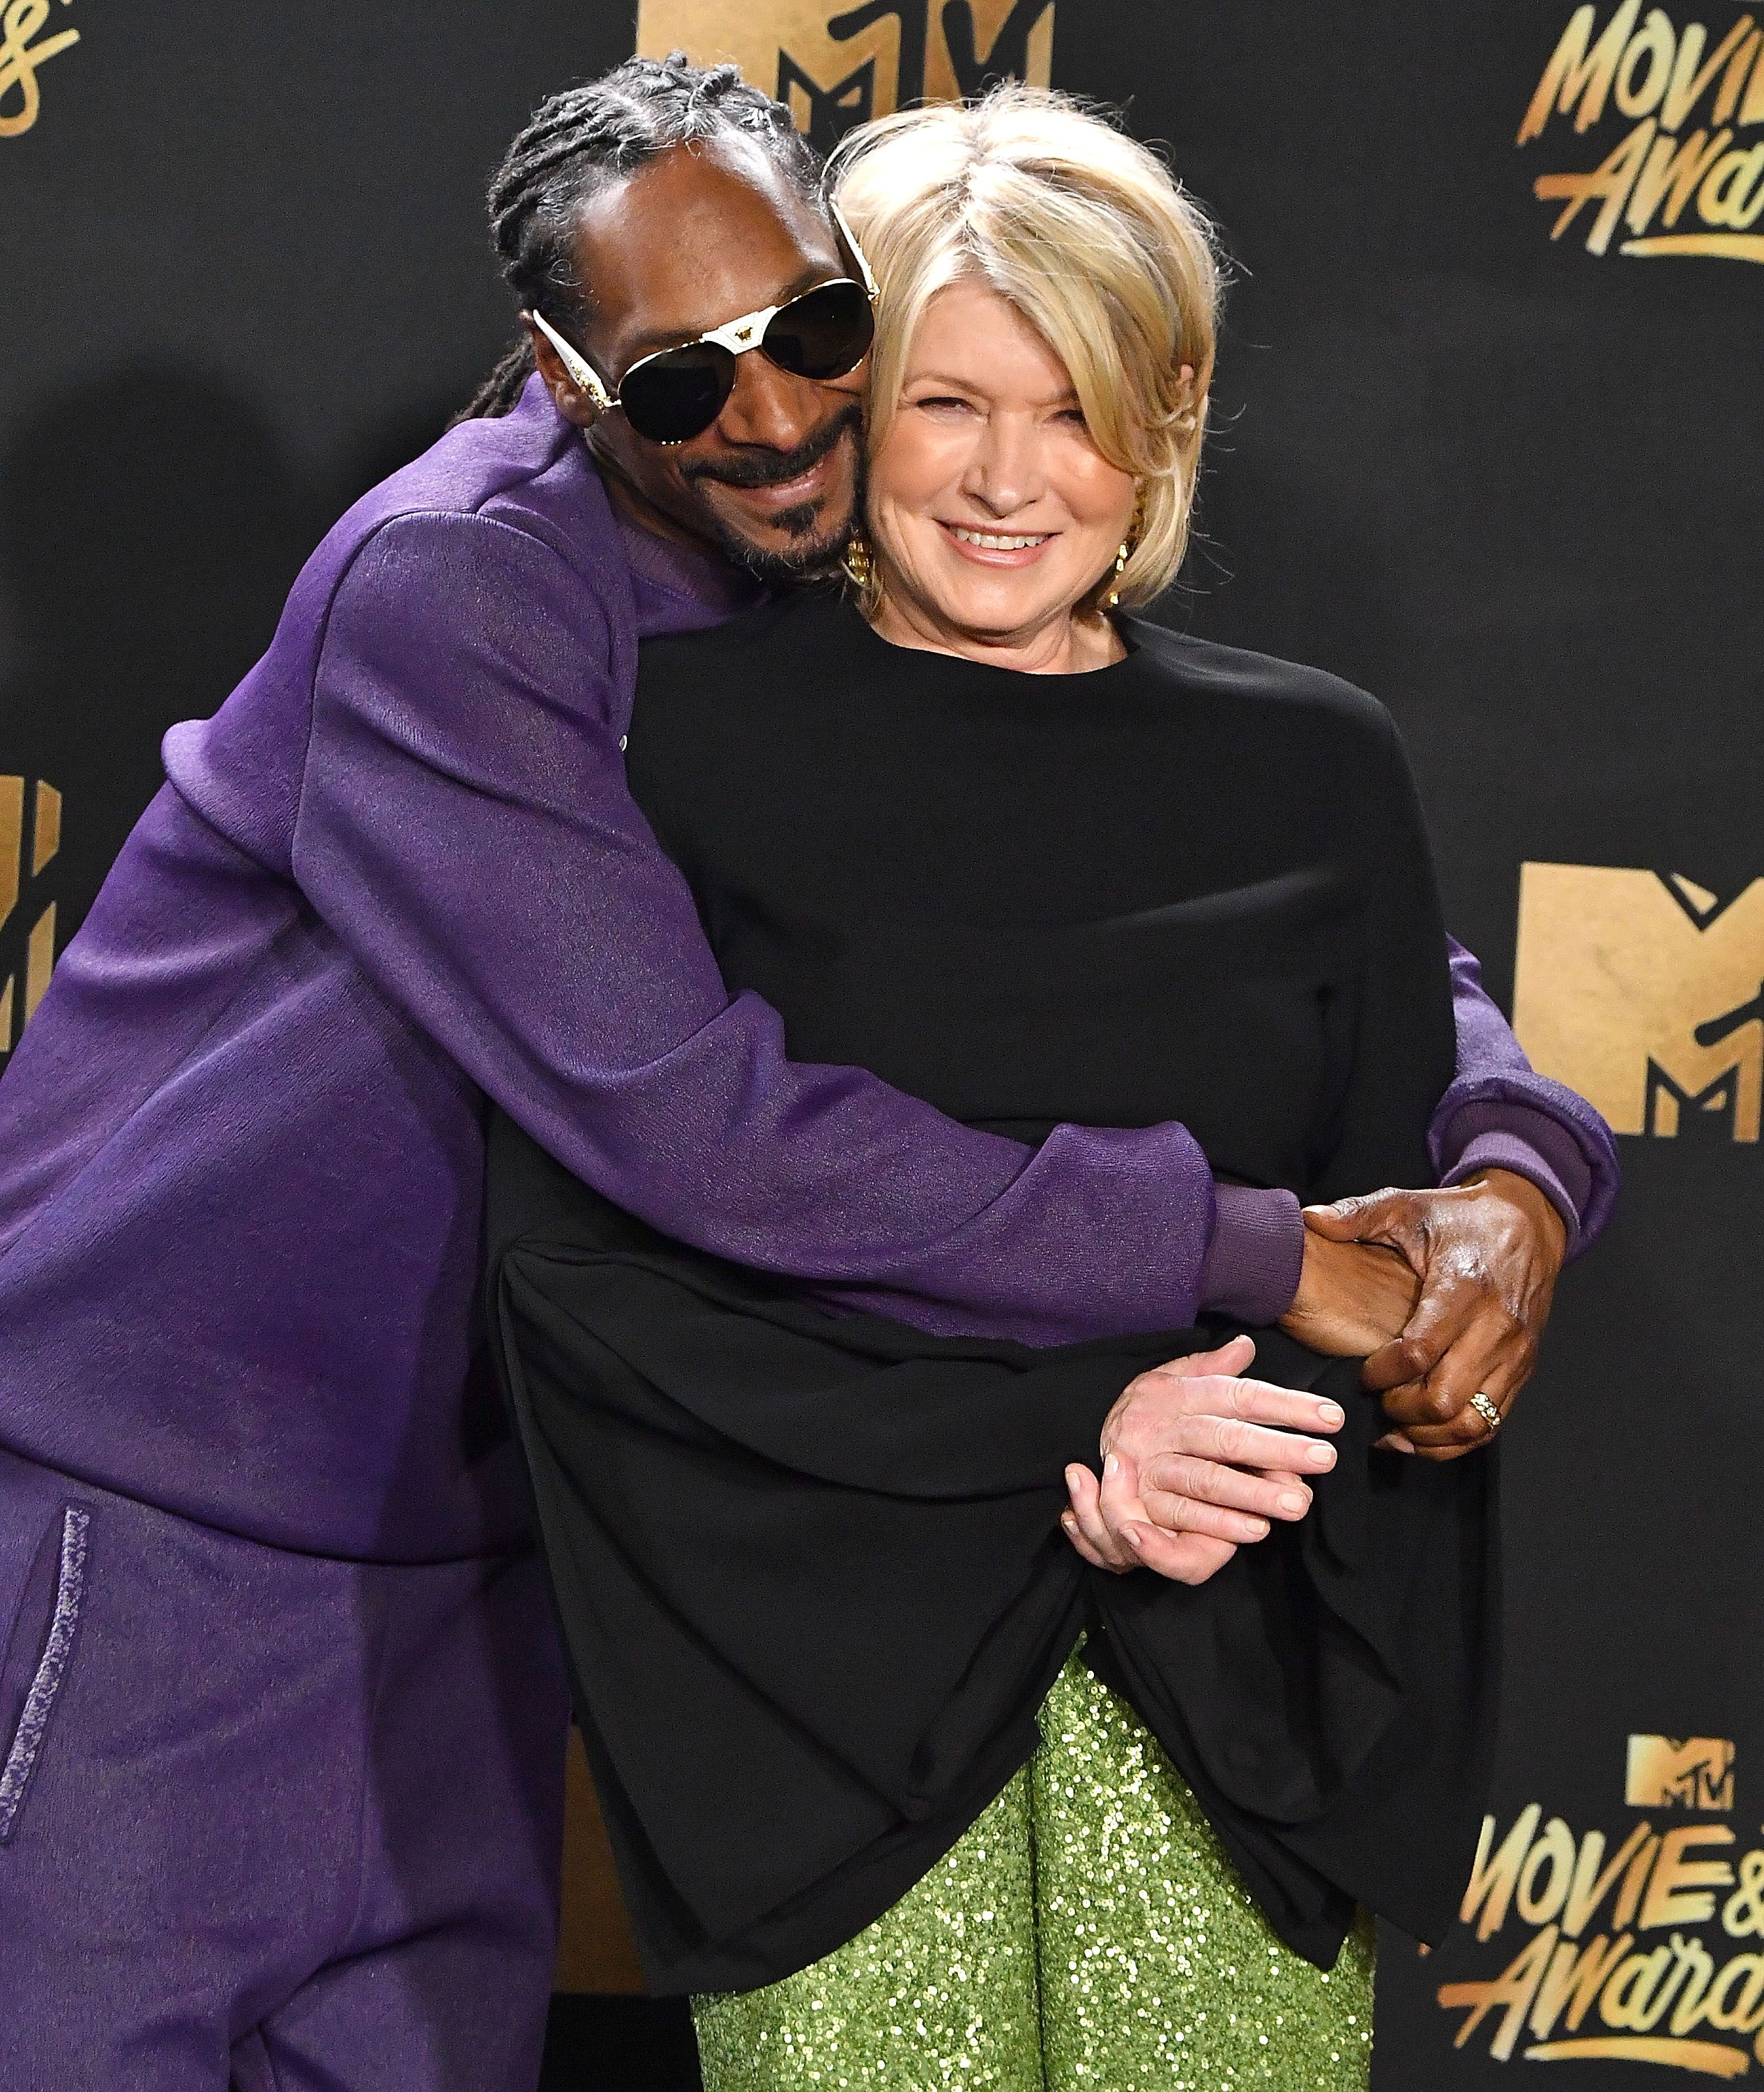 A Timeline of Snoop Dogg and Martha Stewart's Unlikely